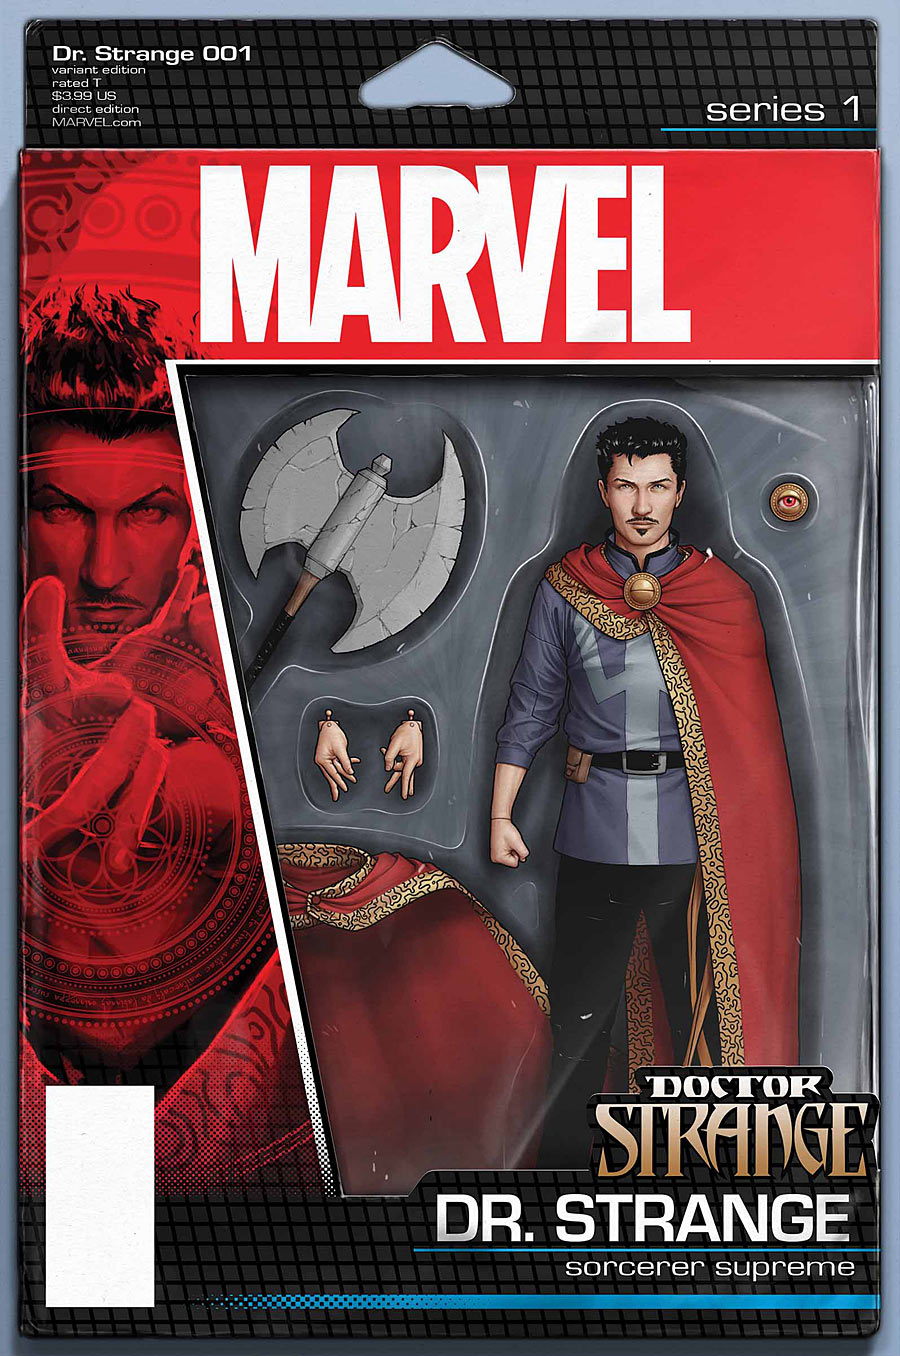 Doctor-Strange-1-Christopher-Action-Figure-Variant-5dff9.jpg